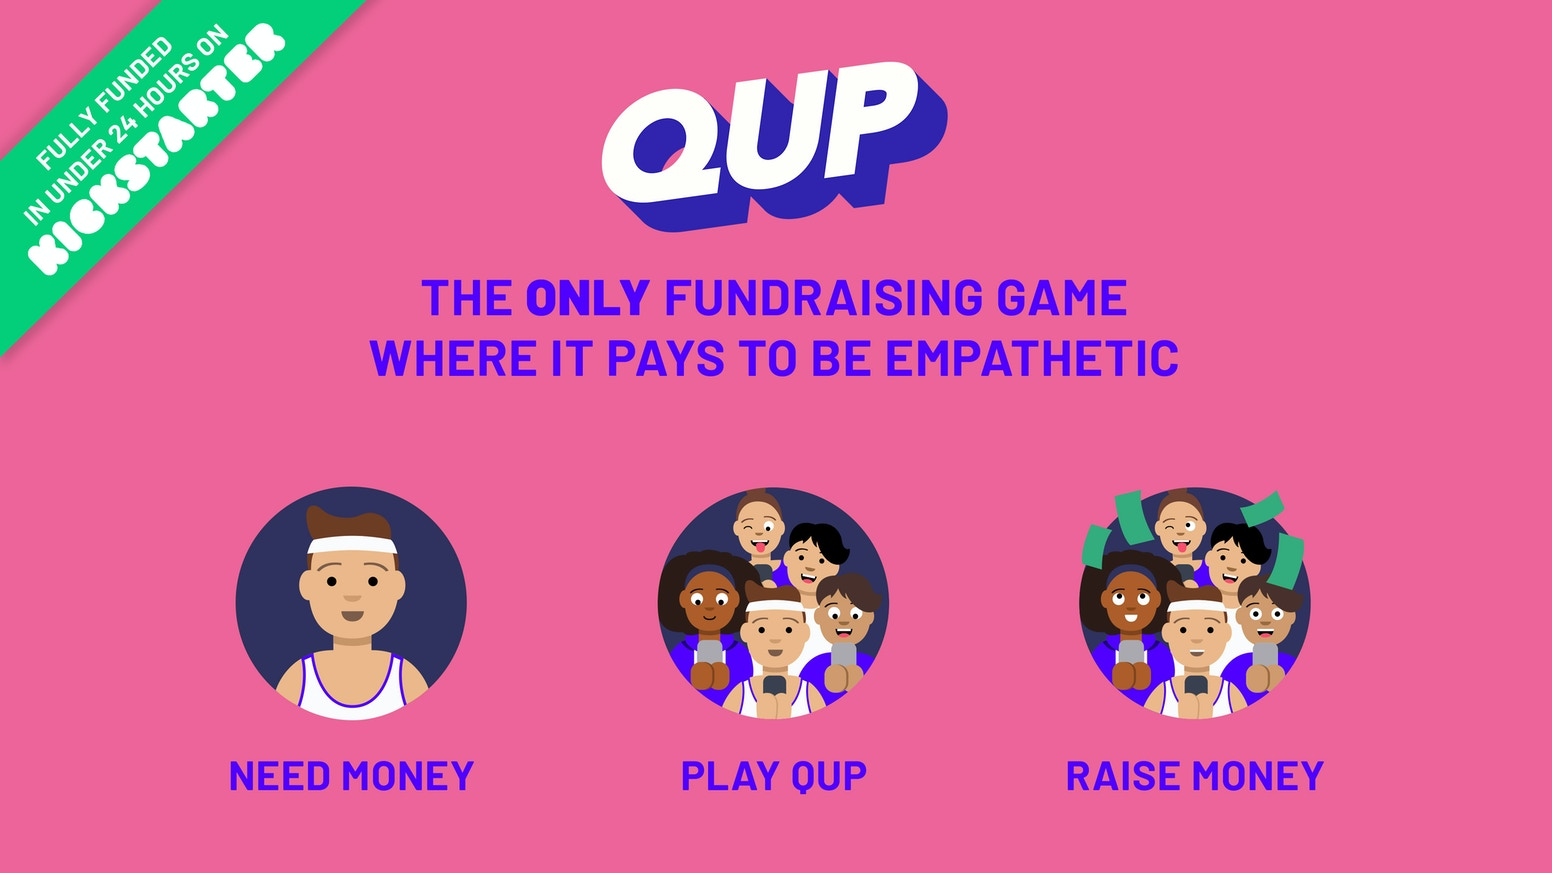 QUP is a mobile game that teaches students empathy and rewards them with cash for playing.